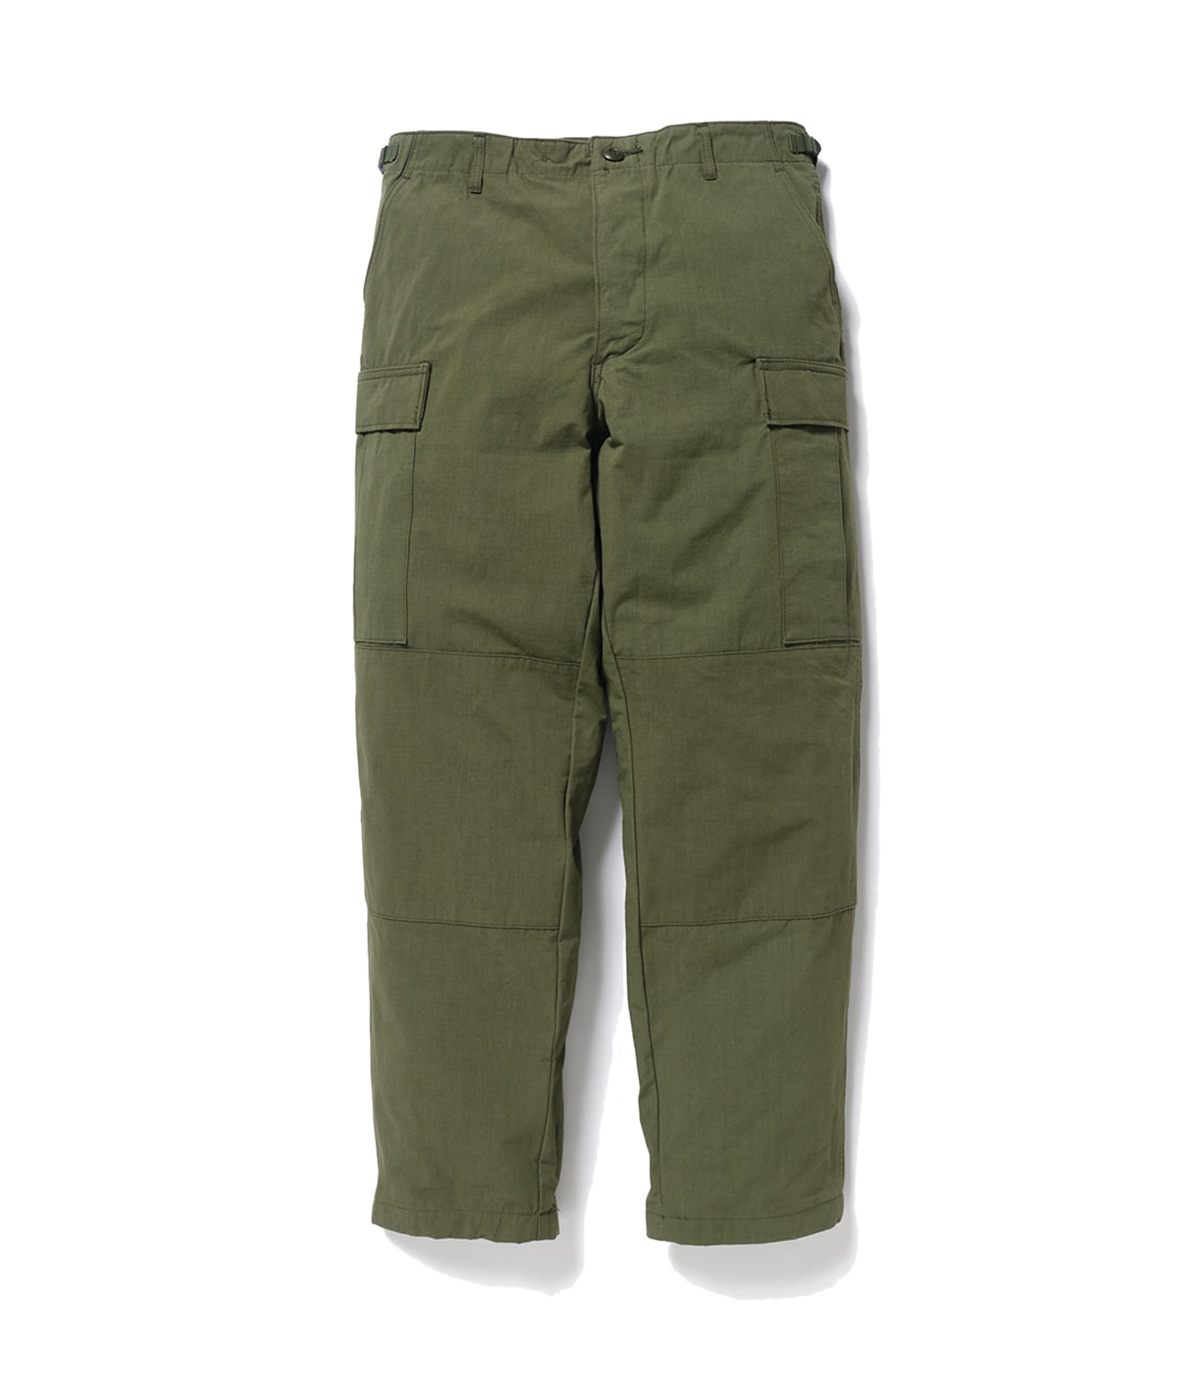 JUNGLE / TROUSERS. NYCO. RIPSTOP